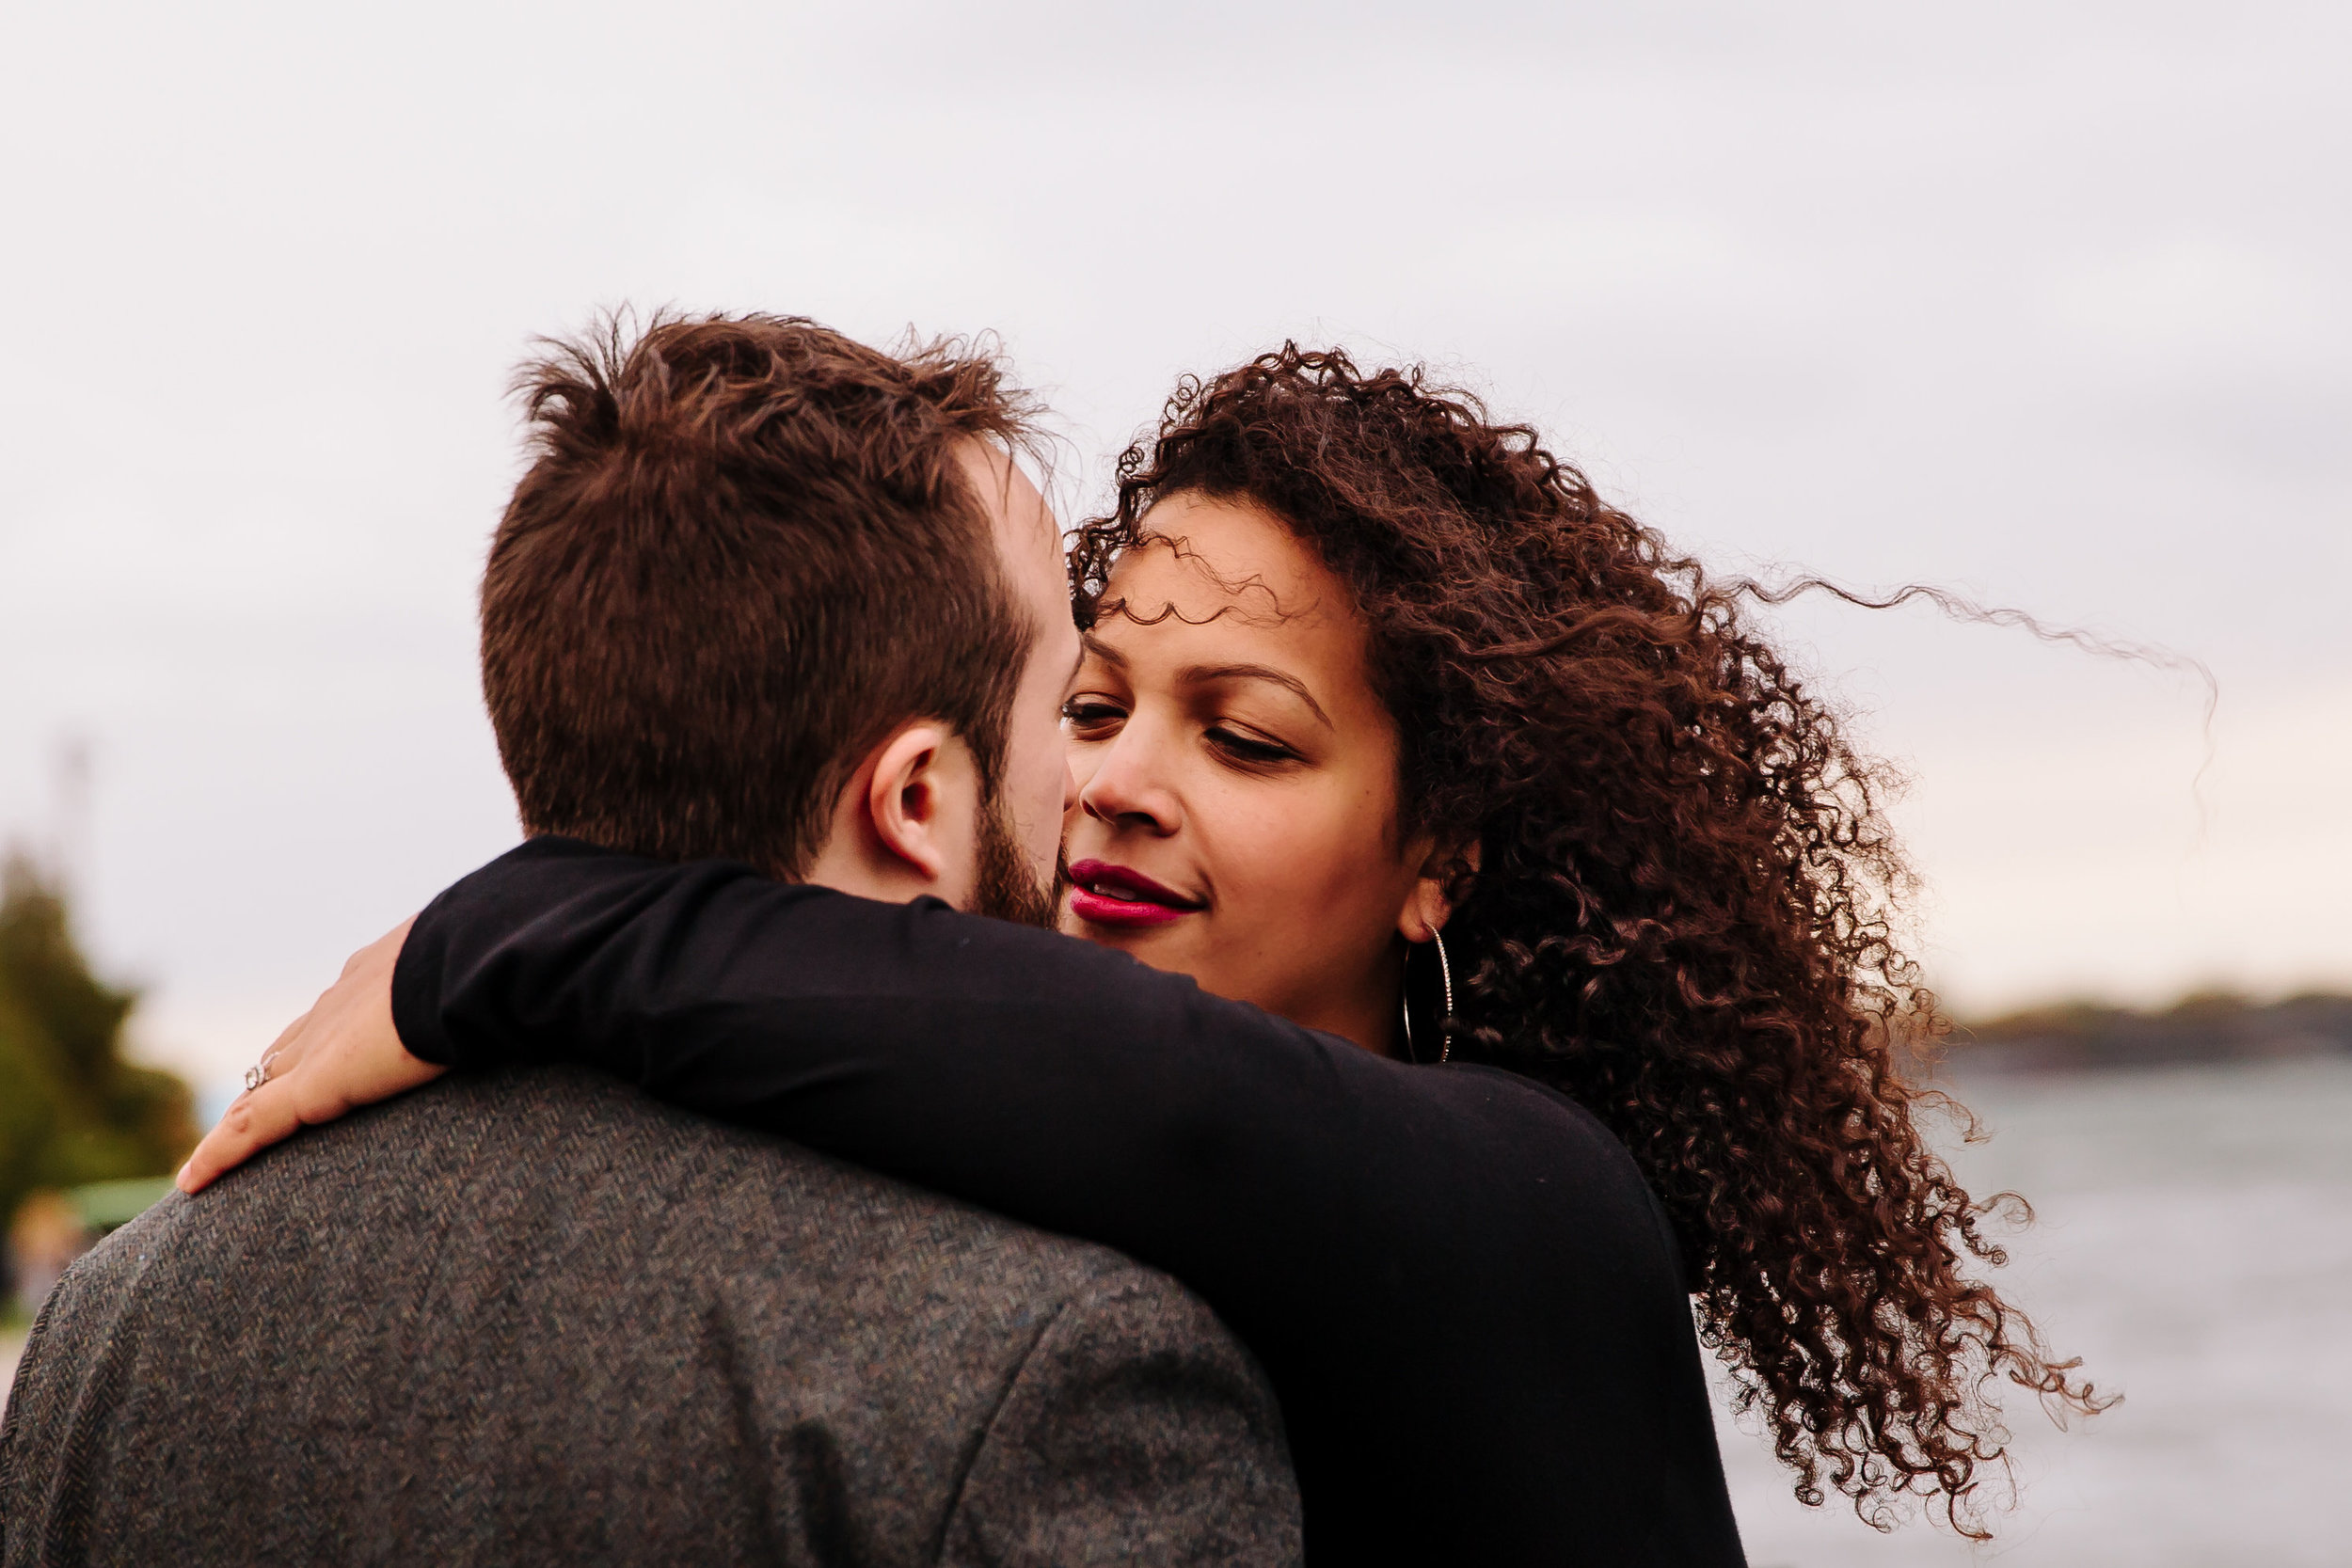 nyc-ferry-brooklyn-bridge-engagement-photos-sarahhoppes.jpg